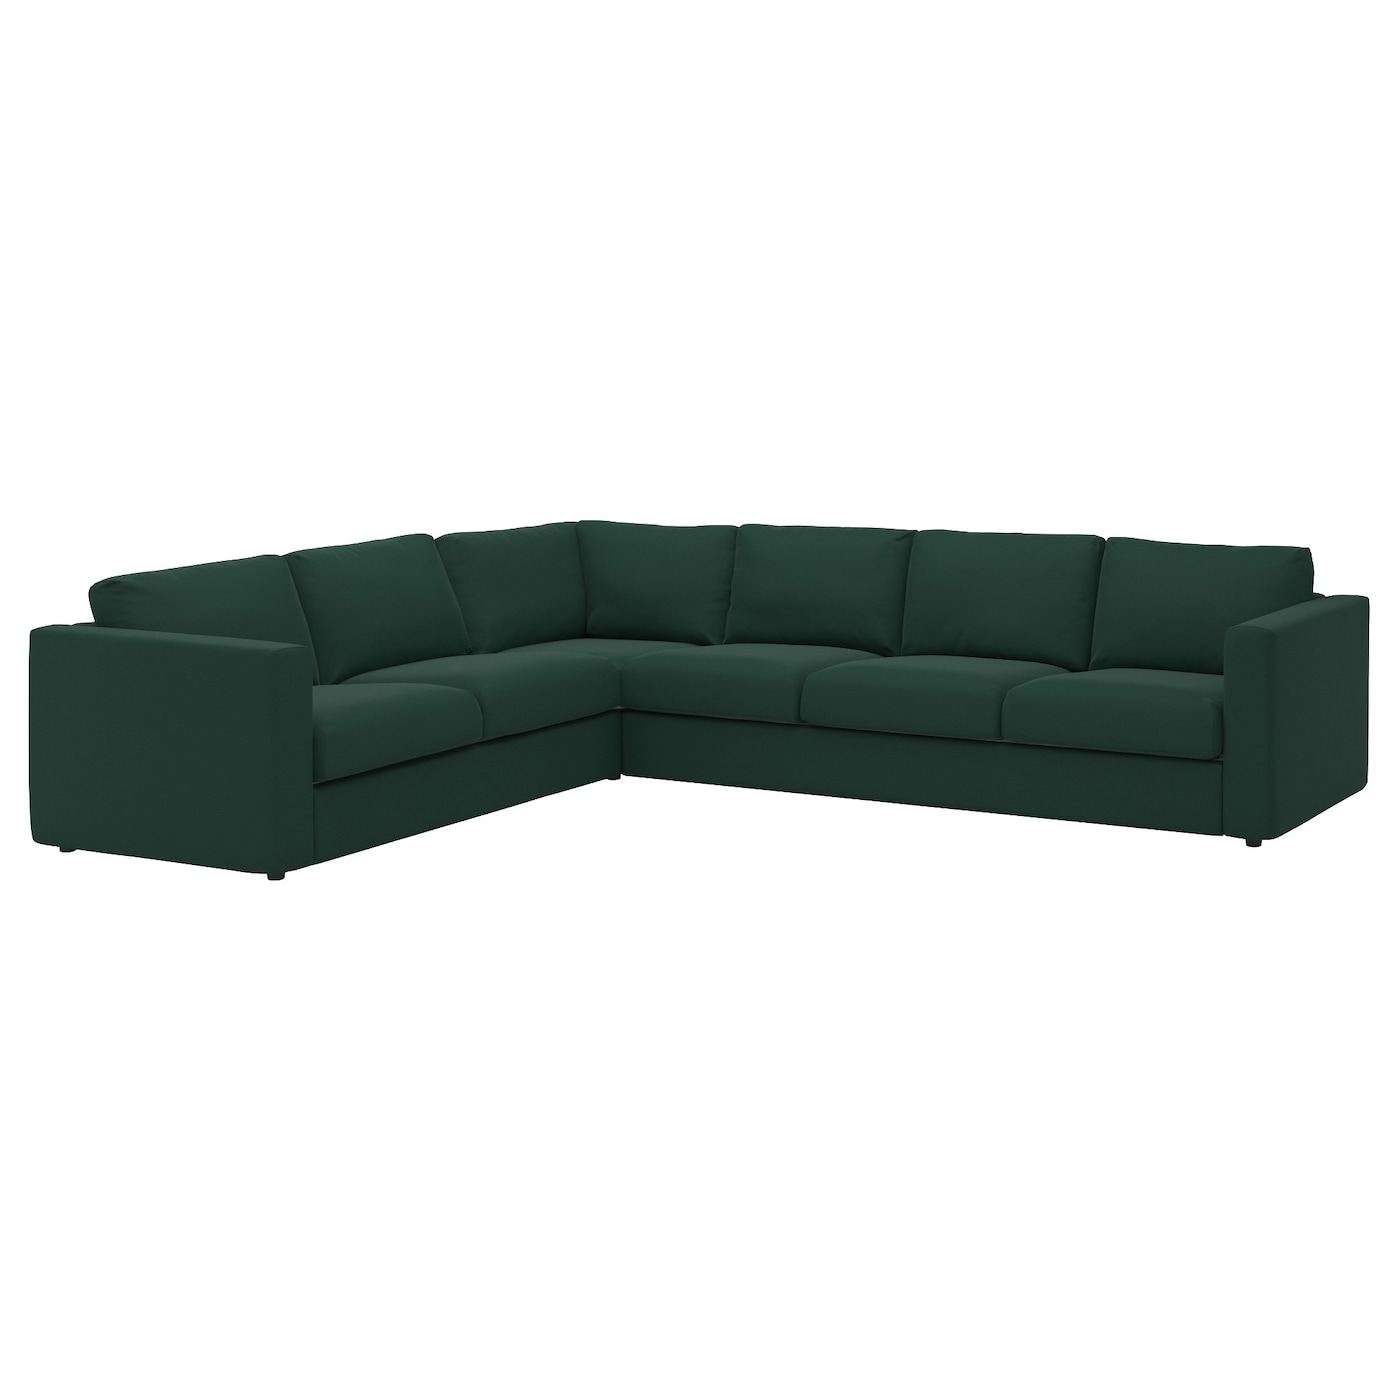 Vimle Corner Sofa 5 Seat Gunnared Dark Green Ikea